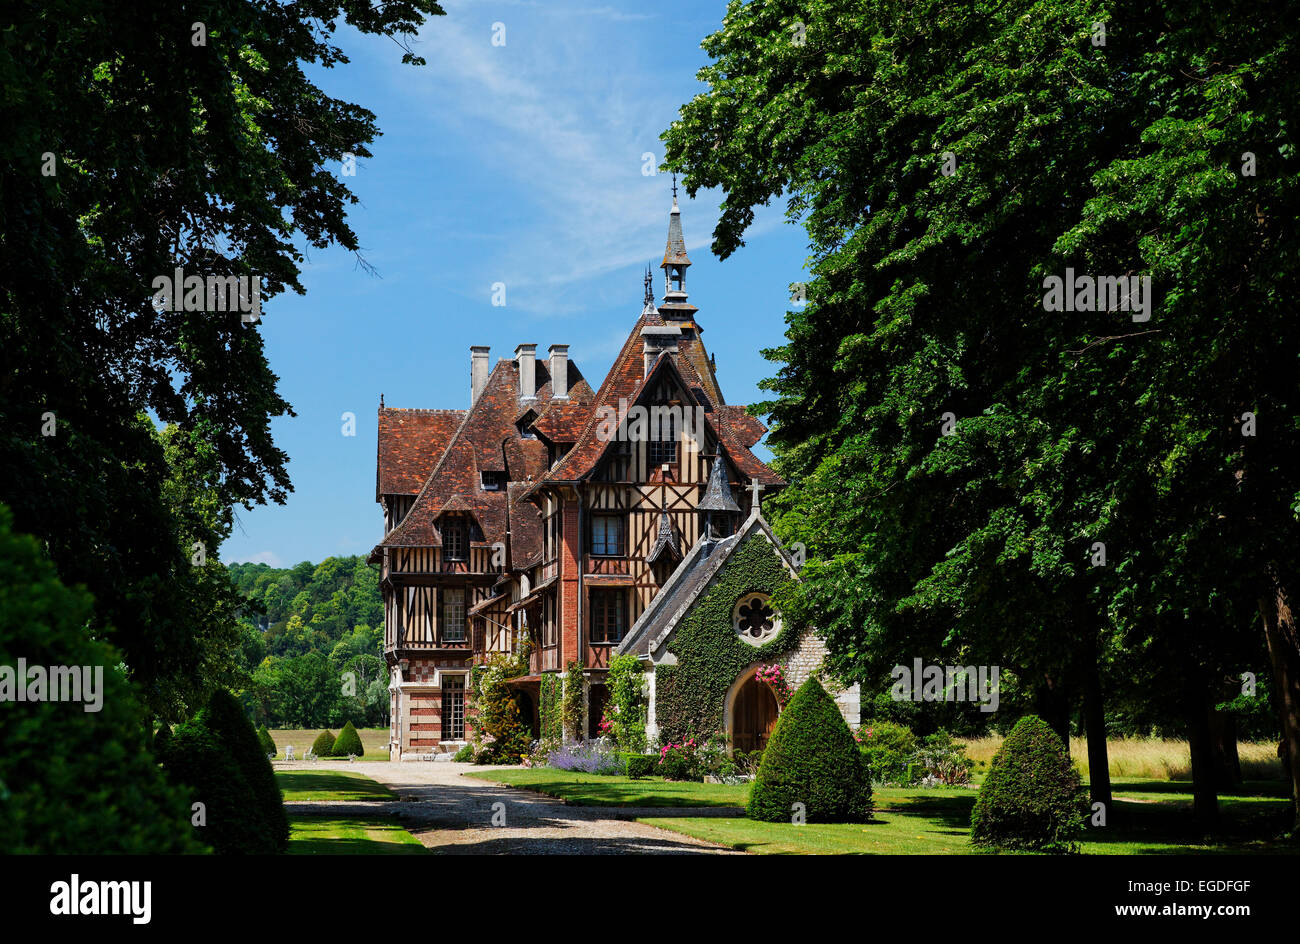 Manor House, Manoir de Villers, Saint Pierre de Manneville, Seine-Maritime, Haute-Normandie, France Photo Stock